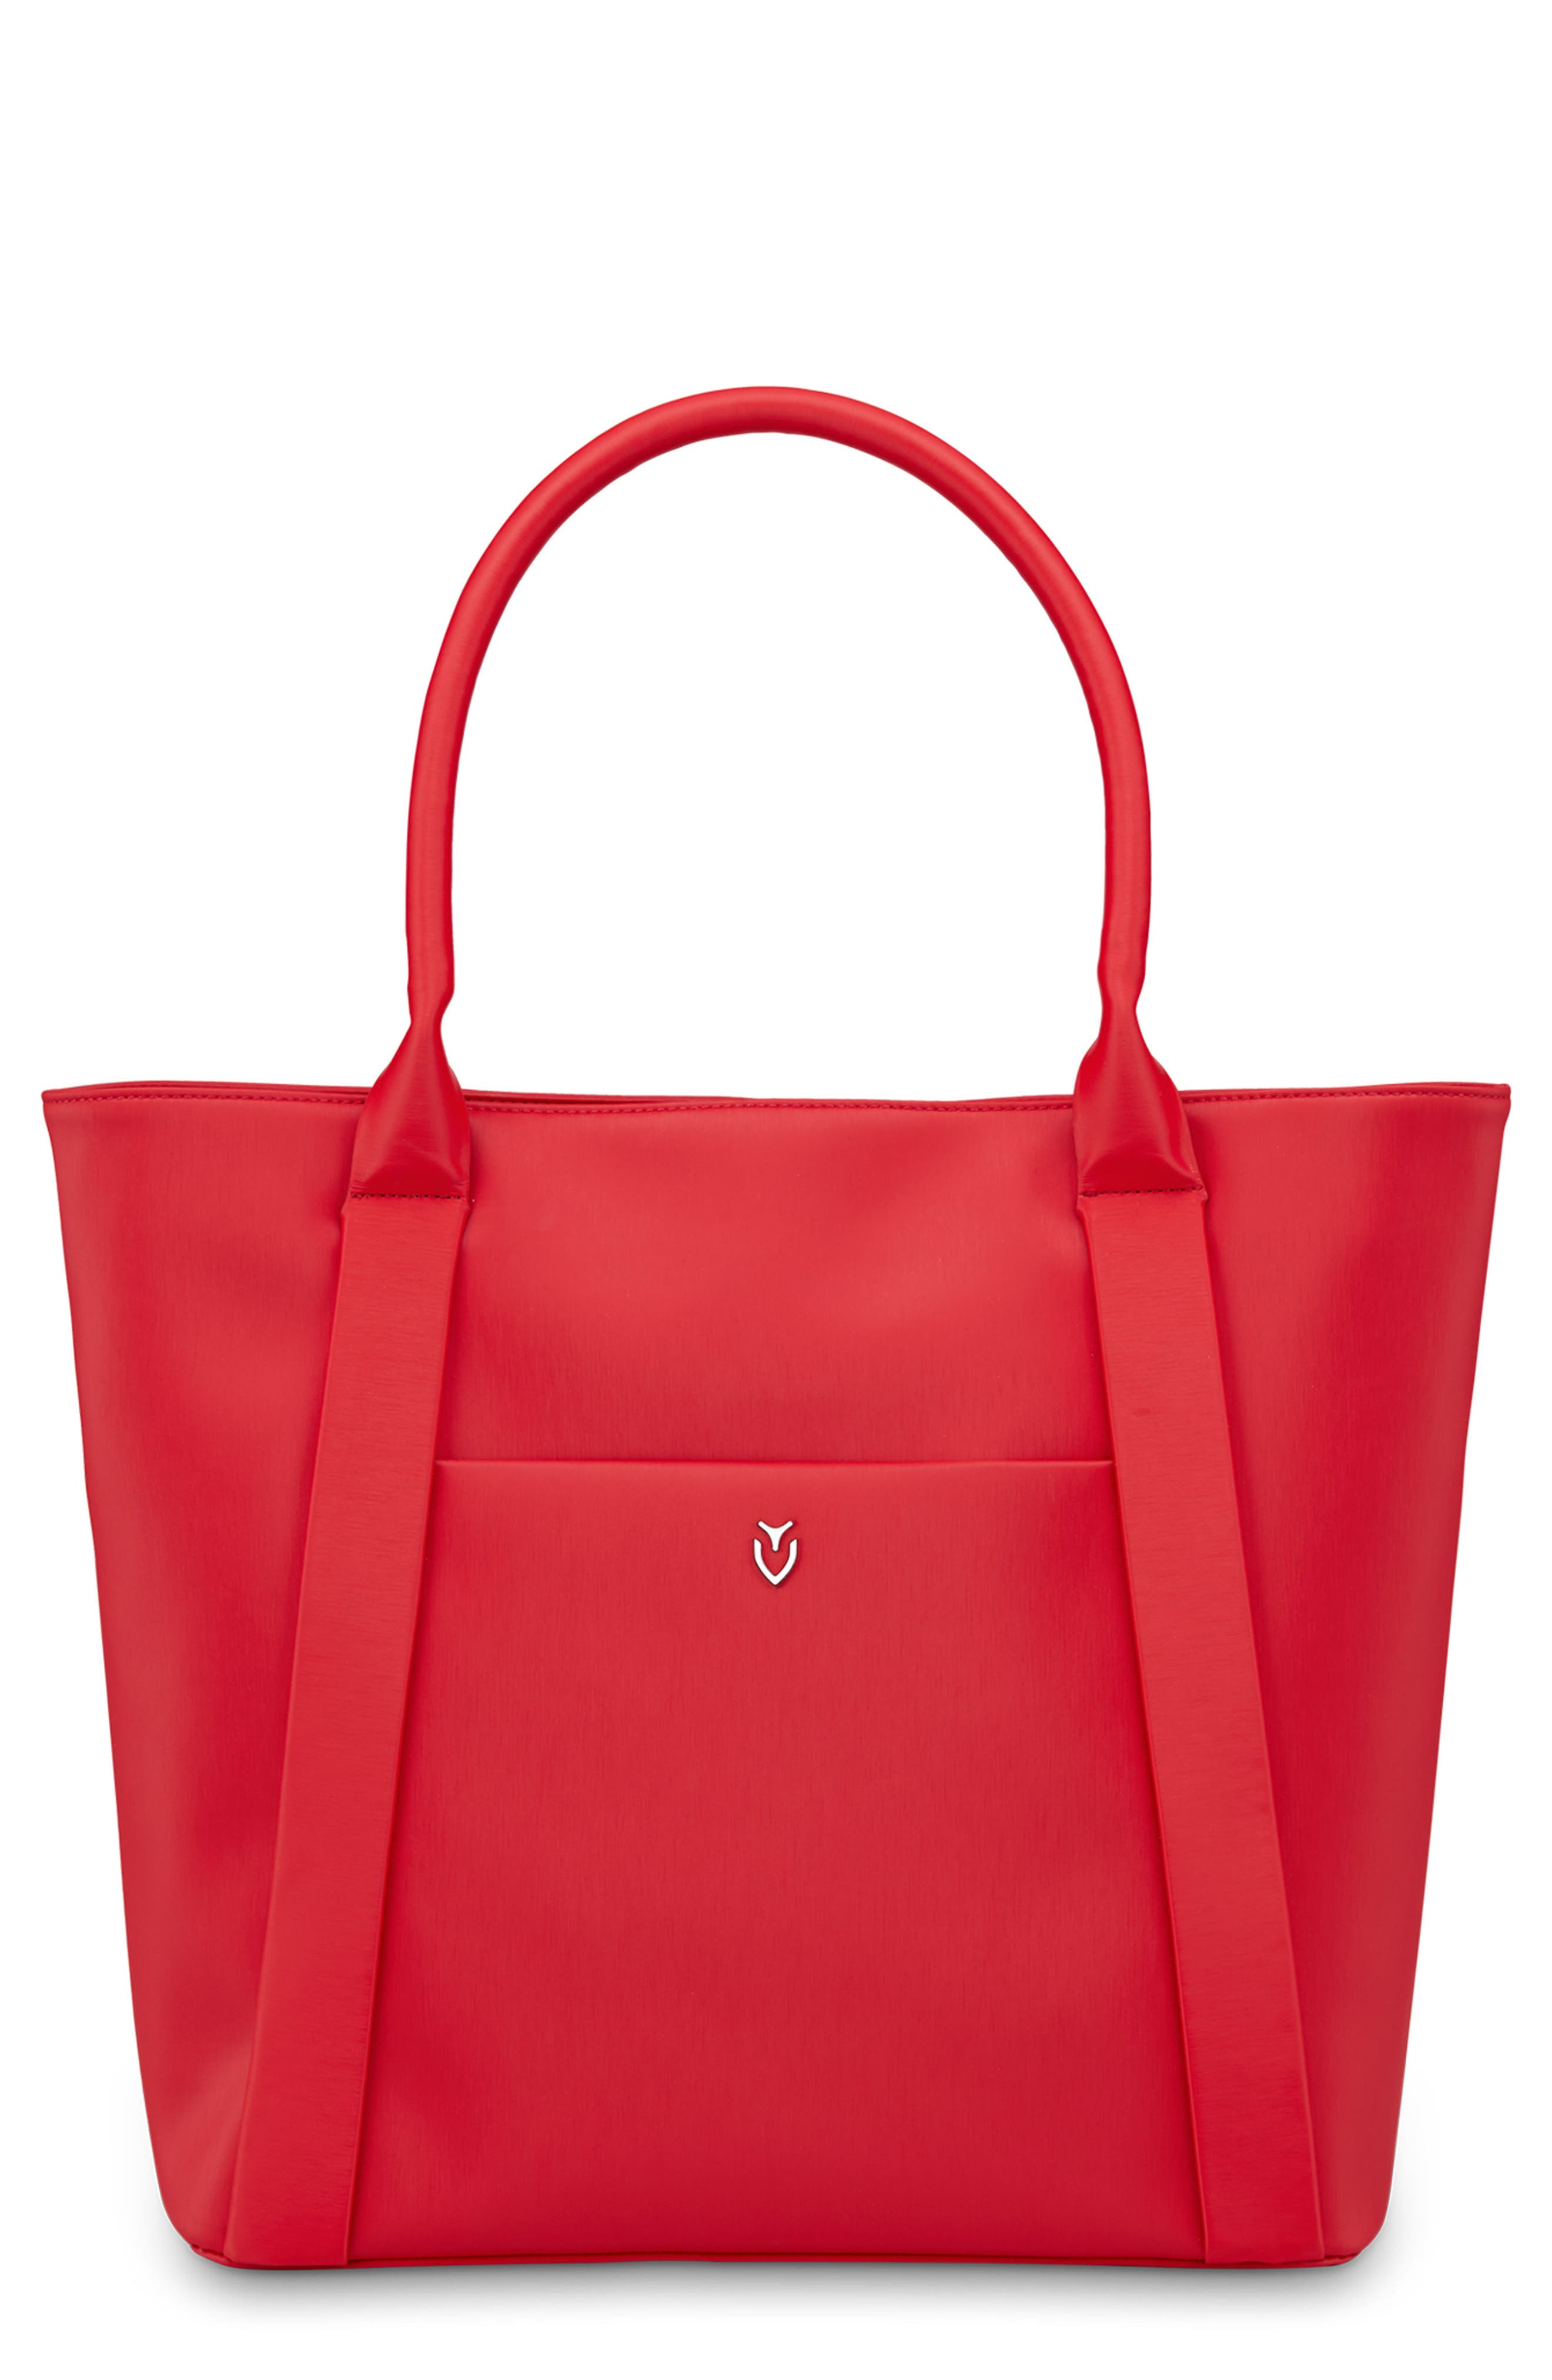 Signature 2.0 Large Faux Leather Tote Bag,                         Main,                         color, Pebbled Red